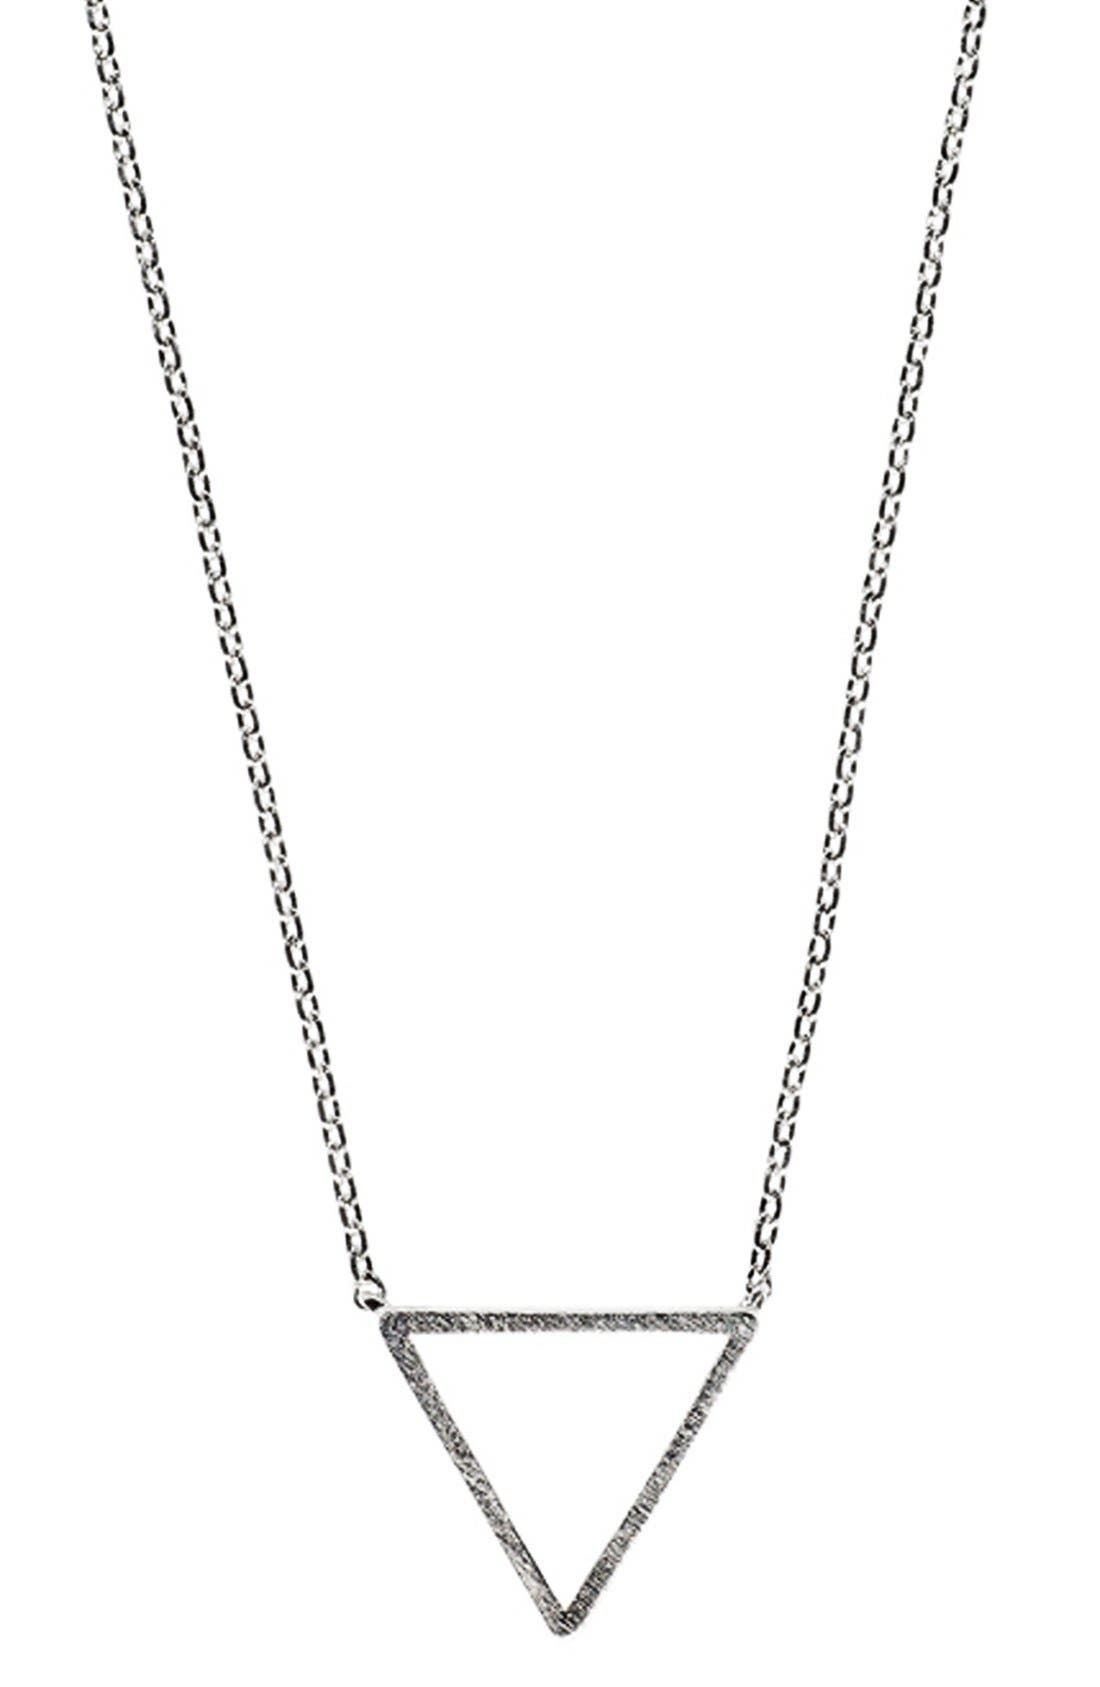 Alternate Image 1 Selected - Wanderlust + Co. Triangle Pendant Necklace